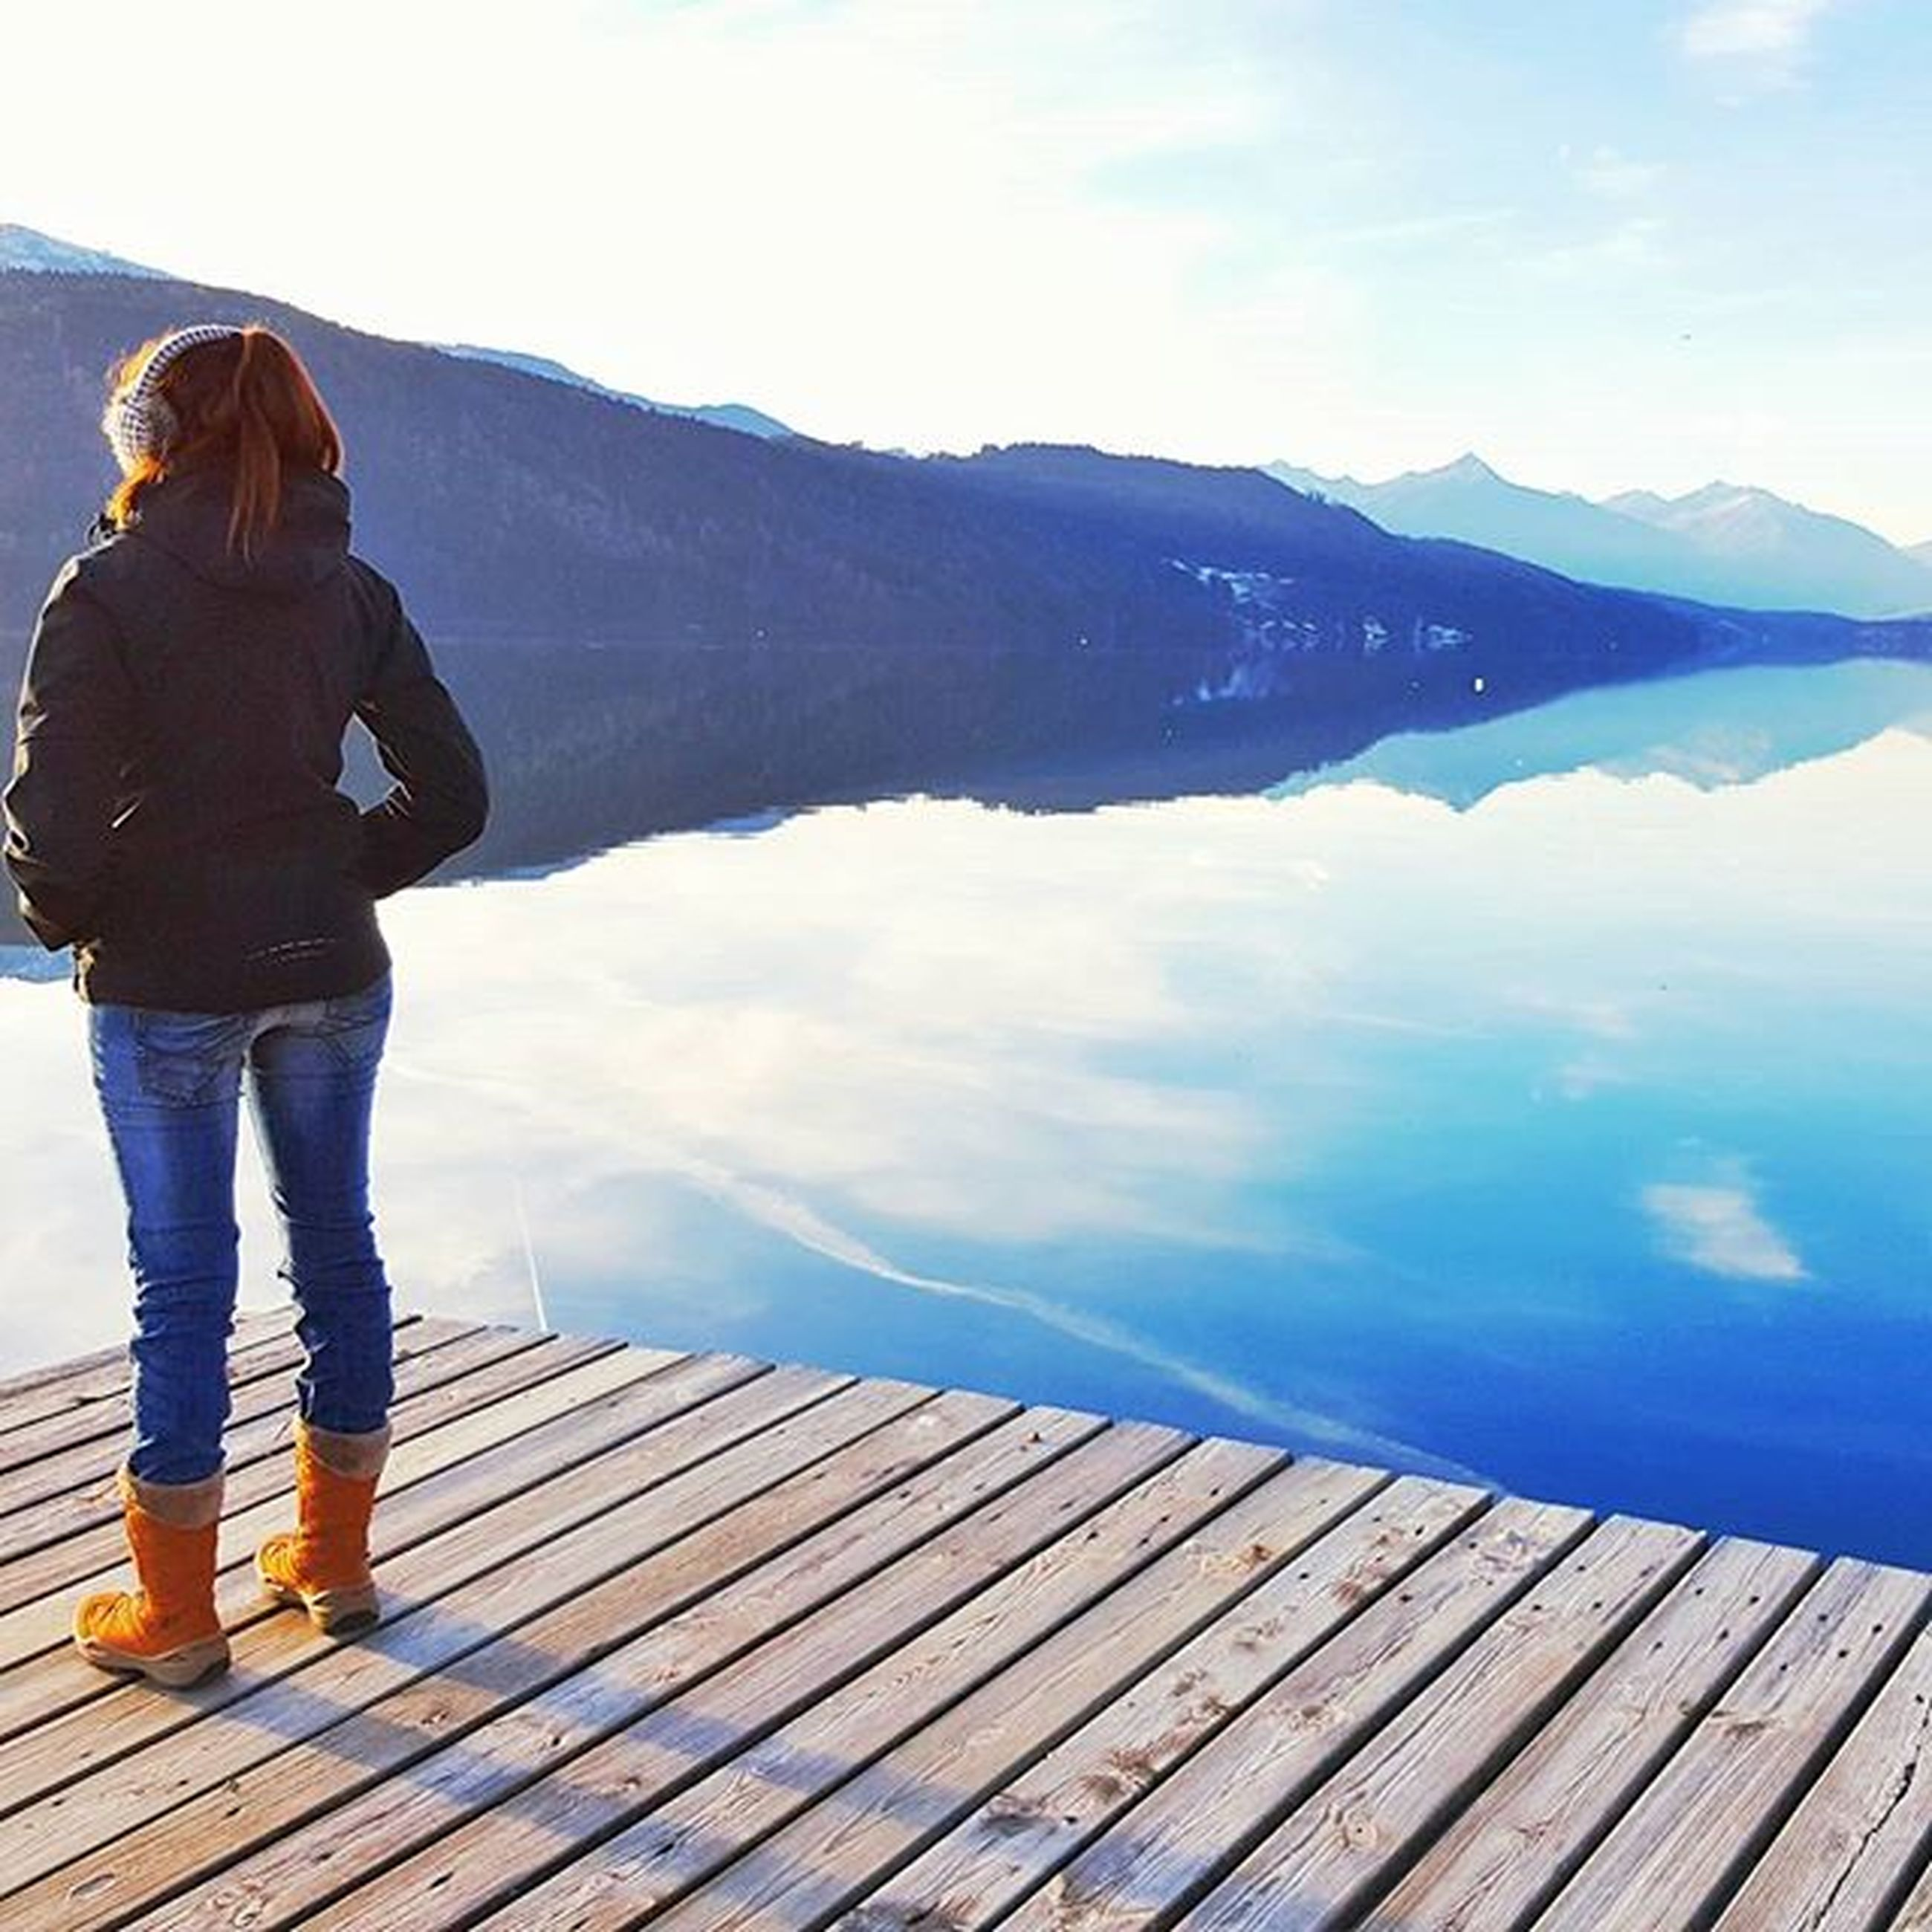 lifestyles, standing, mountain, sky, leisure activity, full length, rear view, water, railing, tranquility, scenics, tranquil scene, casual clothing, looking at view, beauty in nature, nature, pier, men